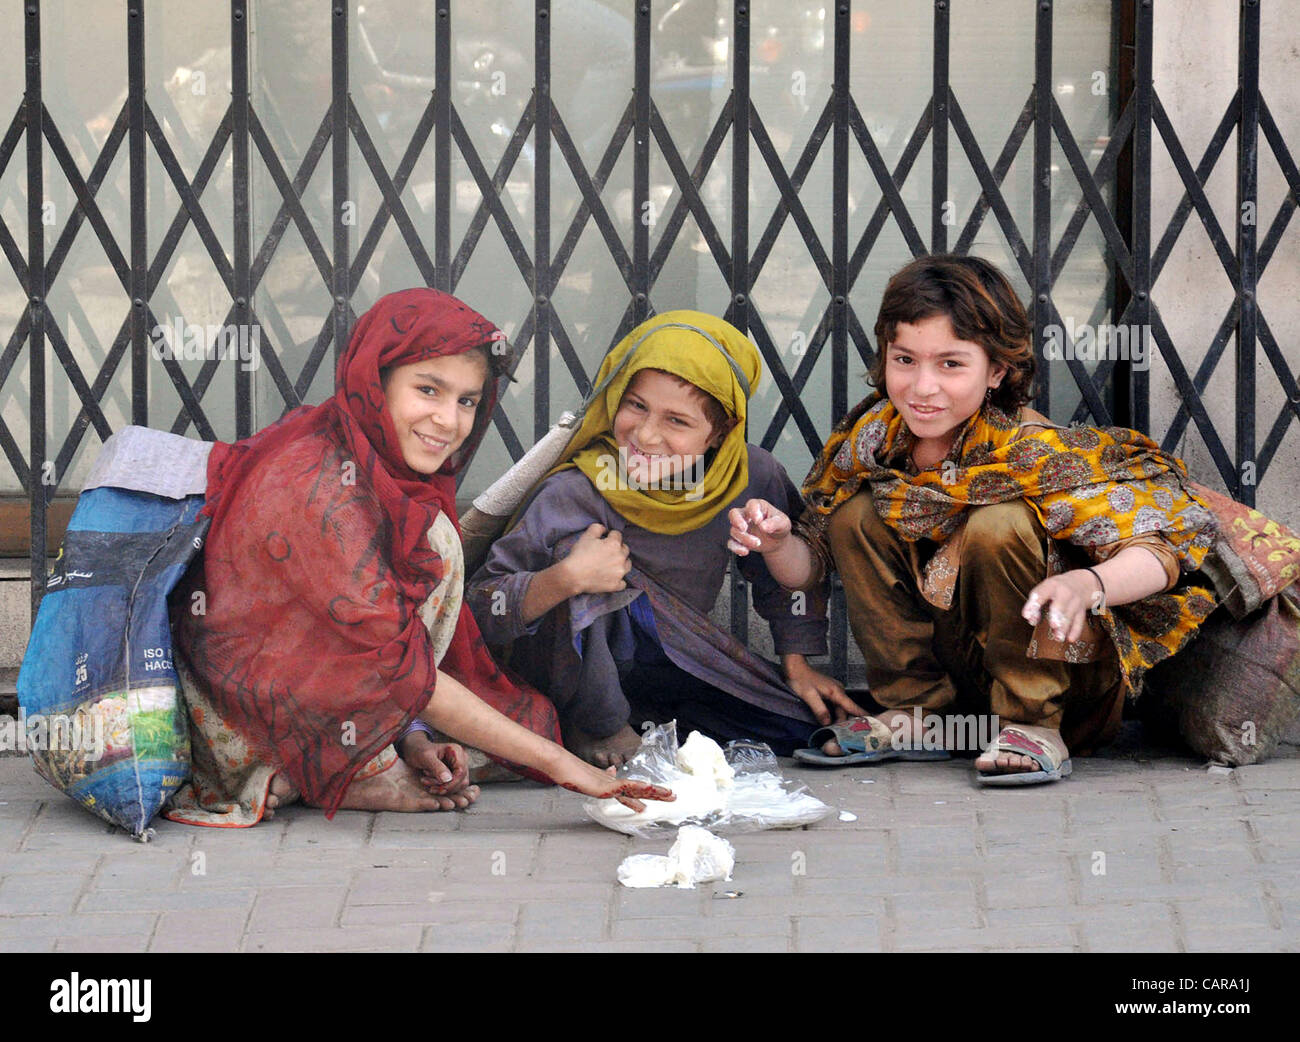 Children, who collect useful items from garbage to earn their livelihood for support their families, sit on a footpath Stock Photo